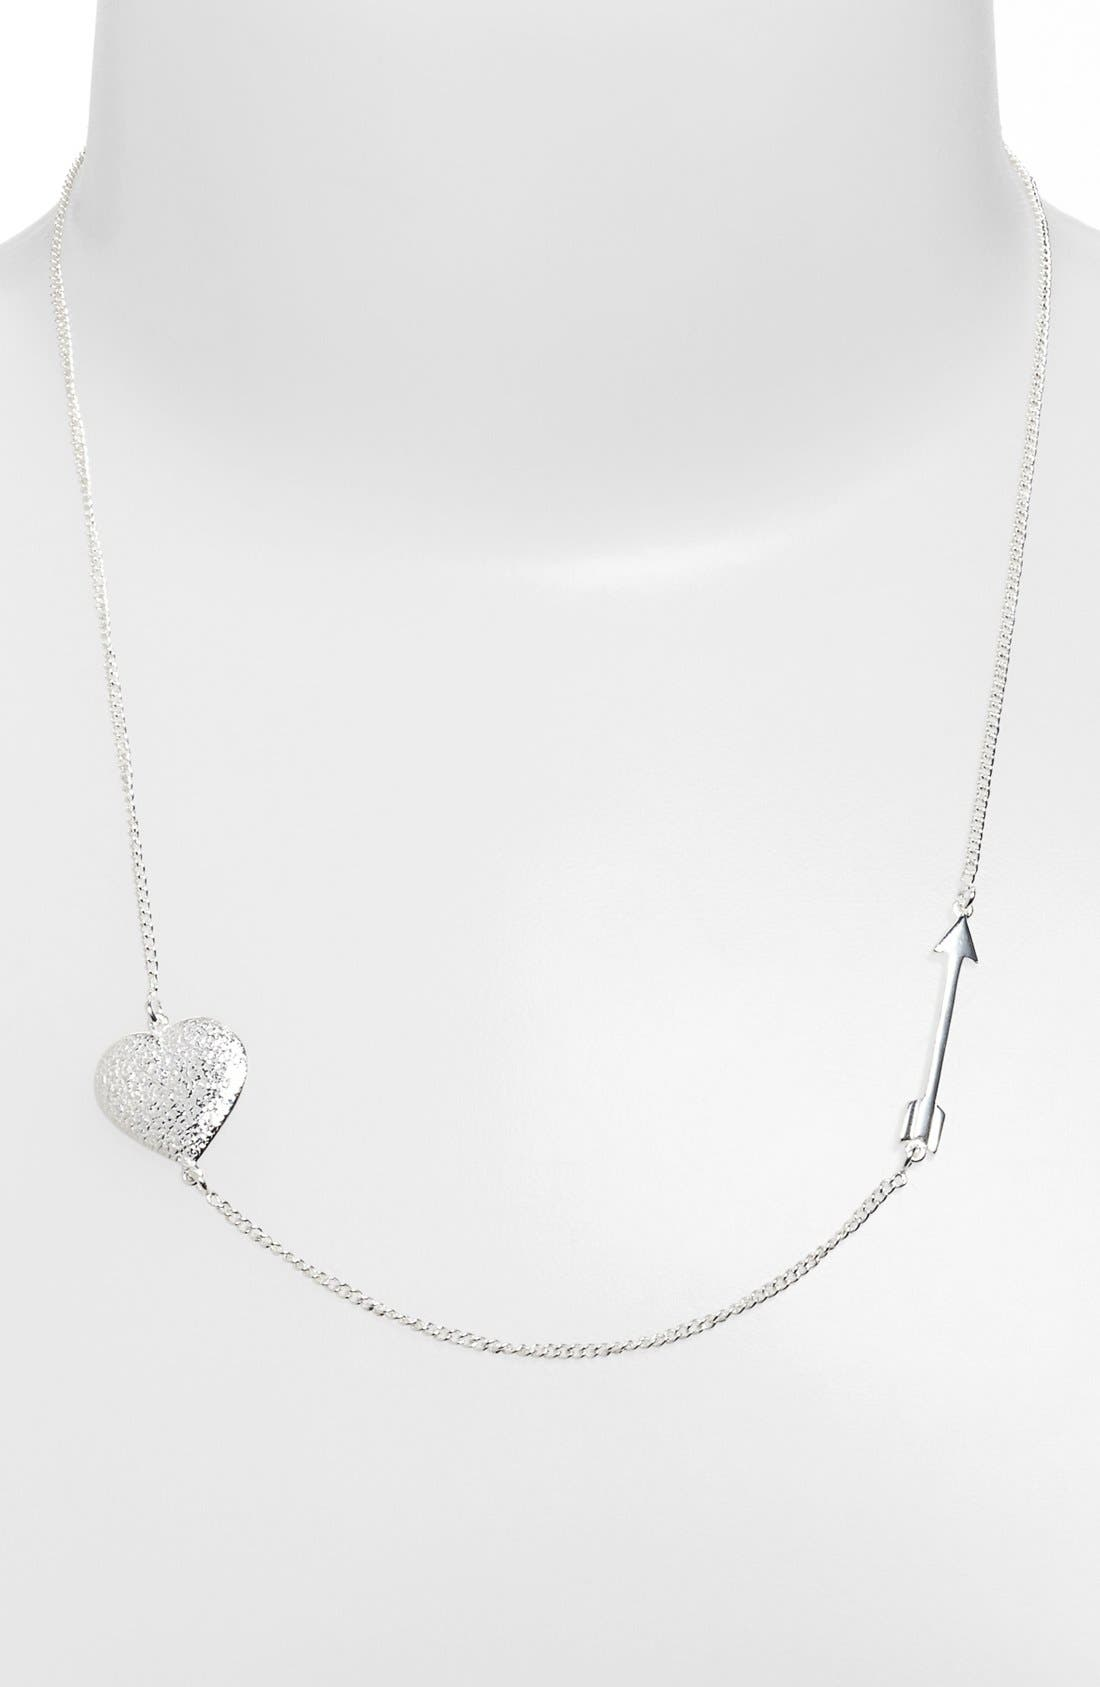 Alternate Image 1 Selected - Melinda Maria 'Heart & Arrow' Station Necklace (Online Only)